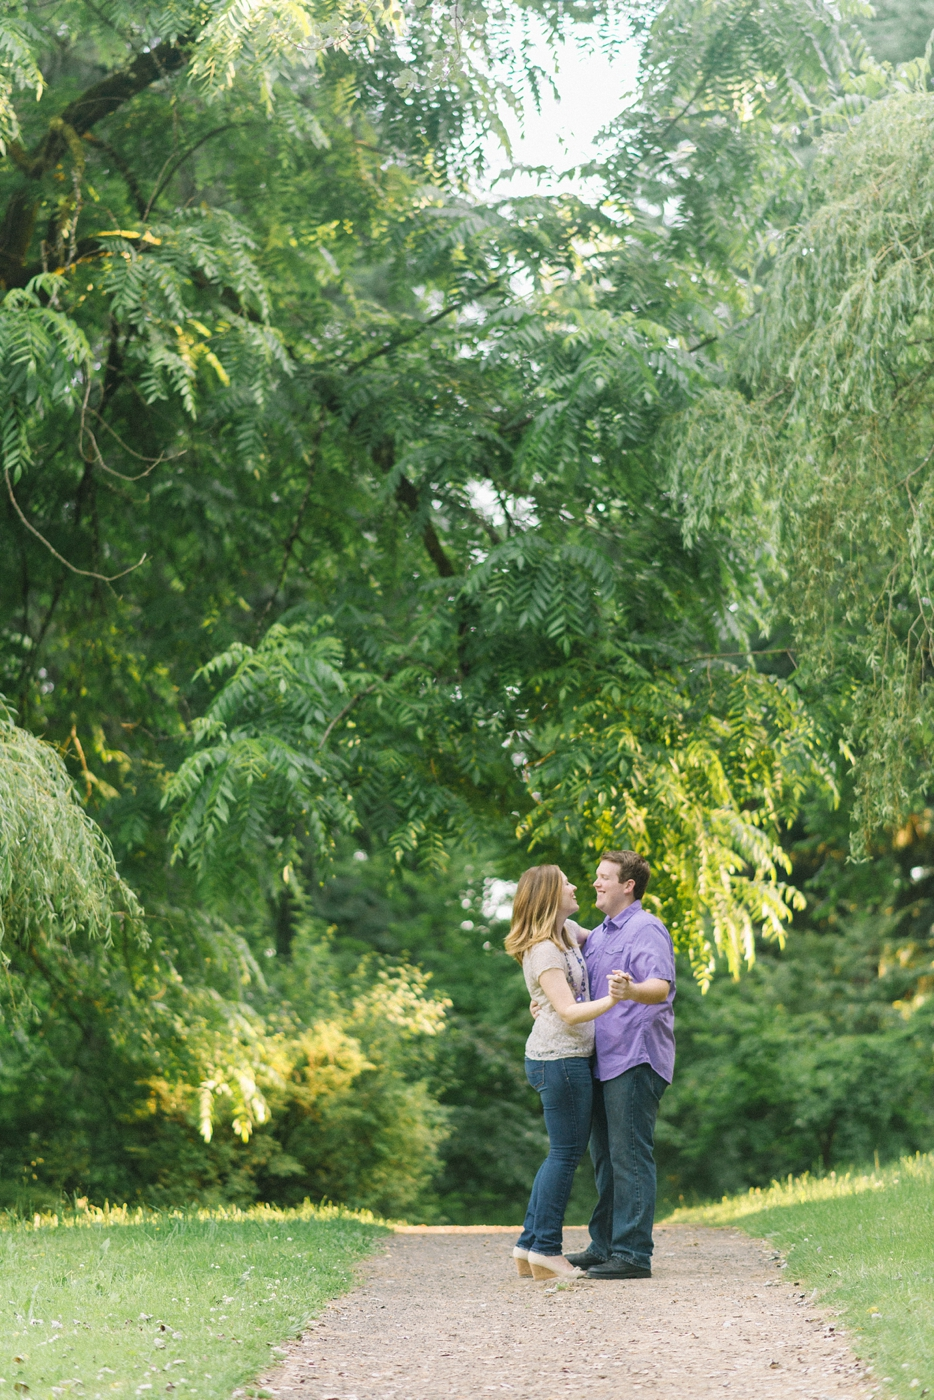 engagement-photography-portland-oregon-hoyt-arboretum-washington-park-romantic-couples-portraits-nature-natural-light-forest-field-shelley-marie-photo-15